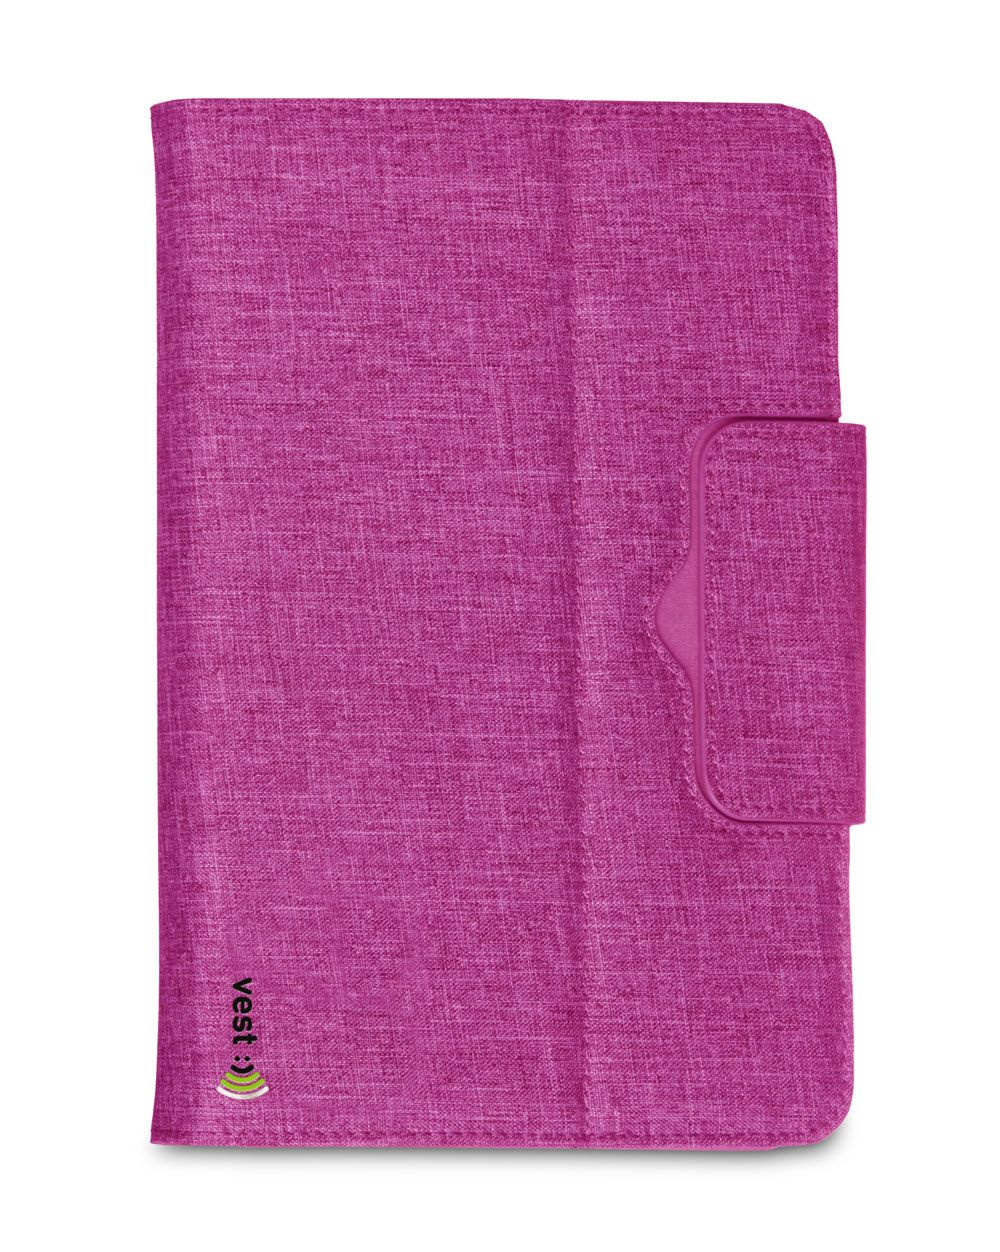 product image for Vest Anti-Radiation Universal Tablet Case 7-8″